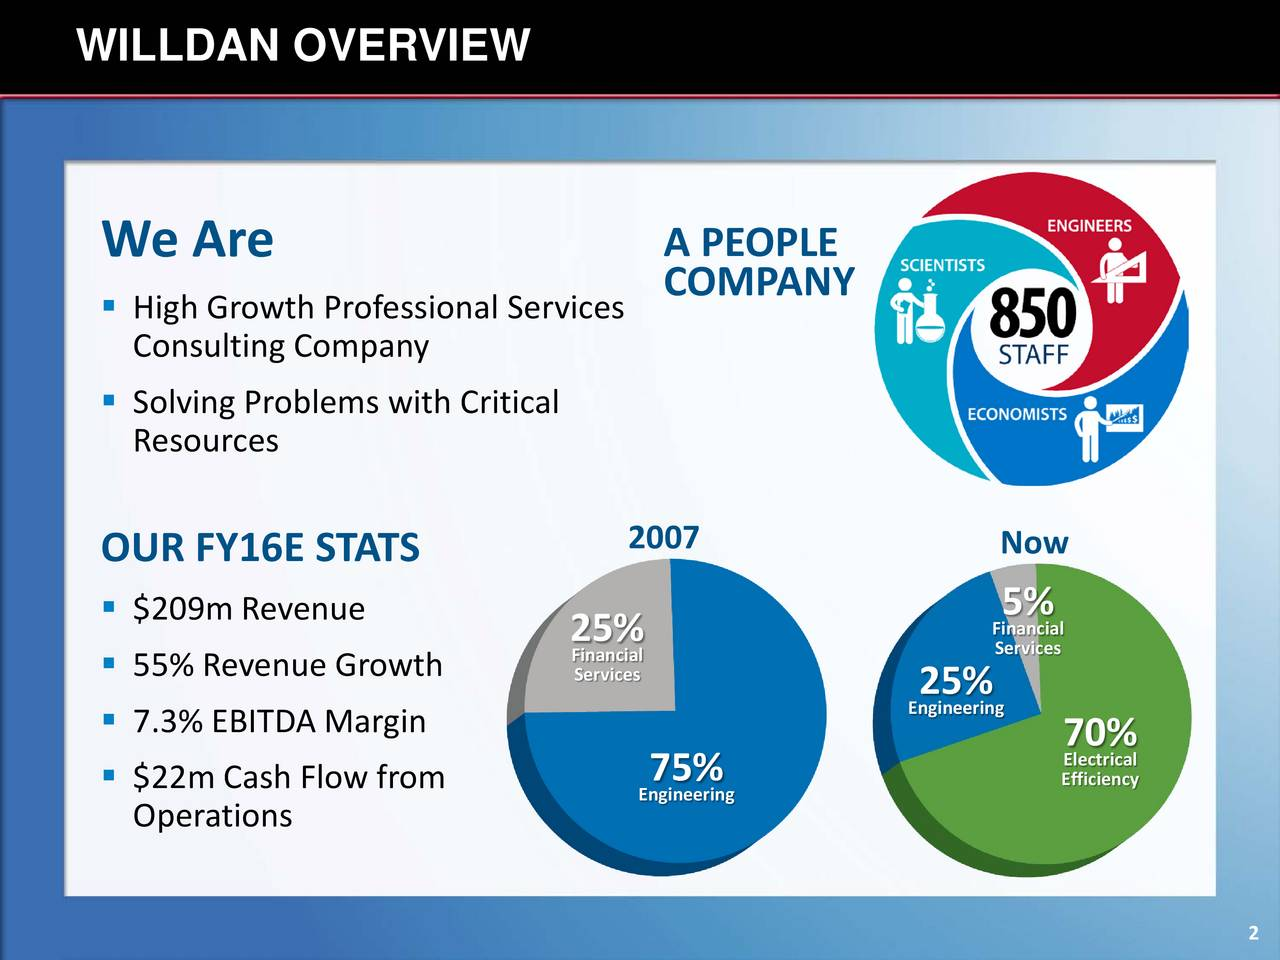 We Are A PEOPLE High Growth Professional ServicesMPANY Consulting Company Solving Problems with Critical Resources OUR FY16E STATS 2007 Now $209m Revenue 5% Financial Servicesl 55% Revenue Growth Services 25% 7.3% EBITDA Margin Engineering Electrical $22m Cash Flow from Engineering Efficiency Operations 2